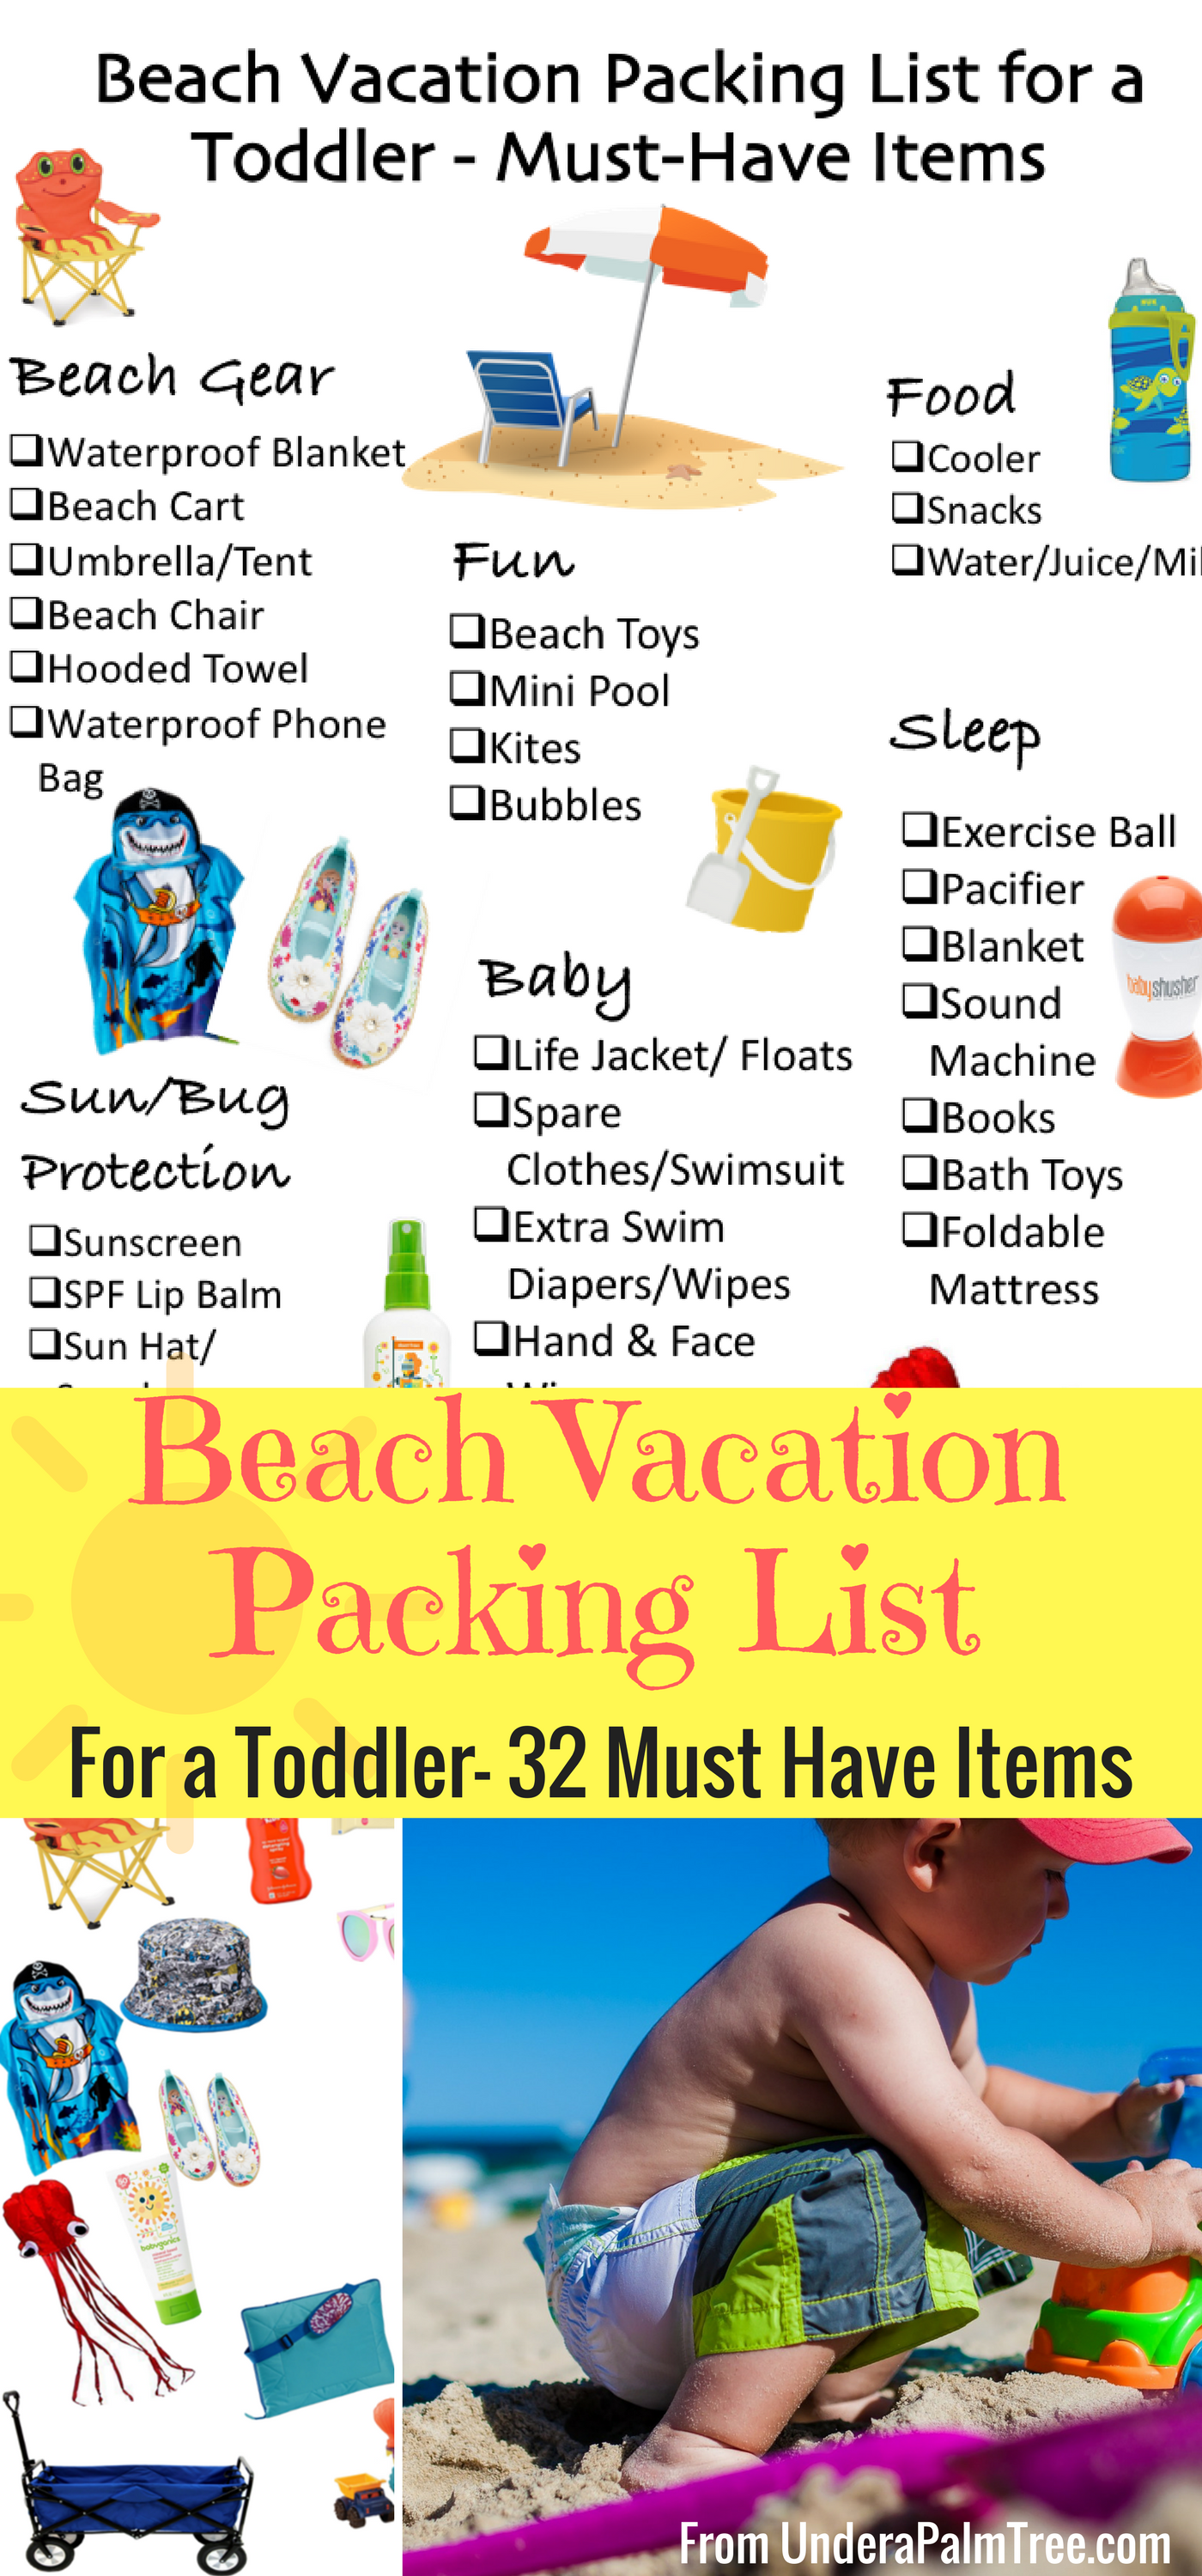 Beach Vacation Packing List for a Toddler < From Under a Palm Tree